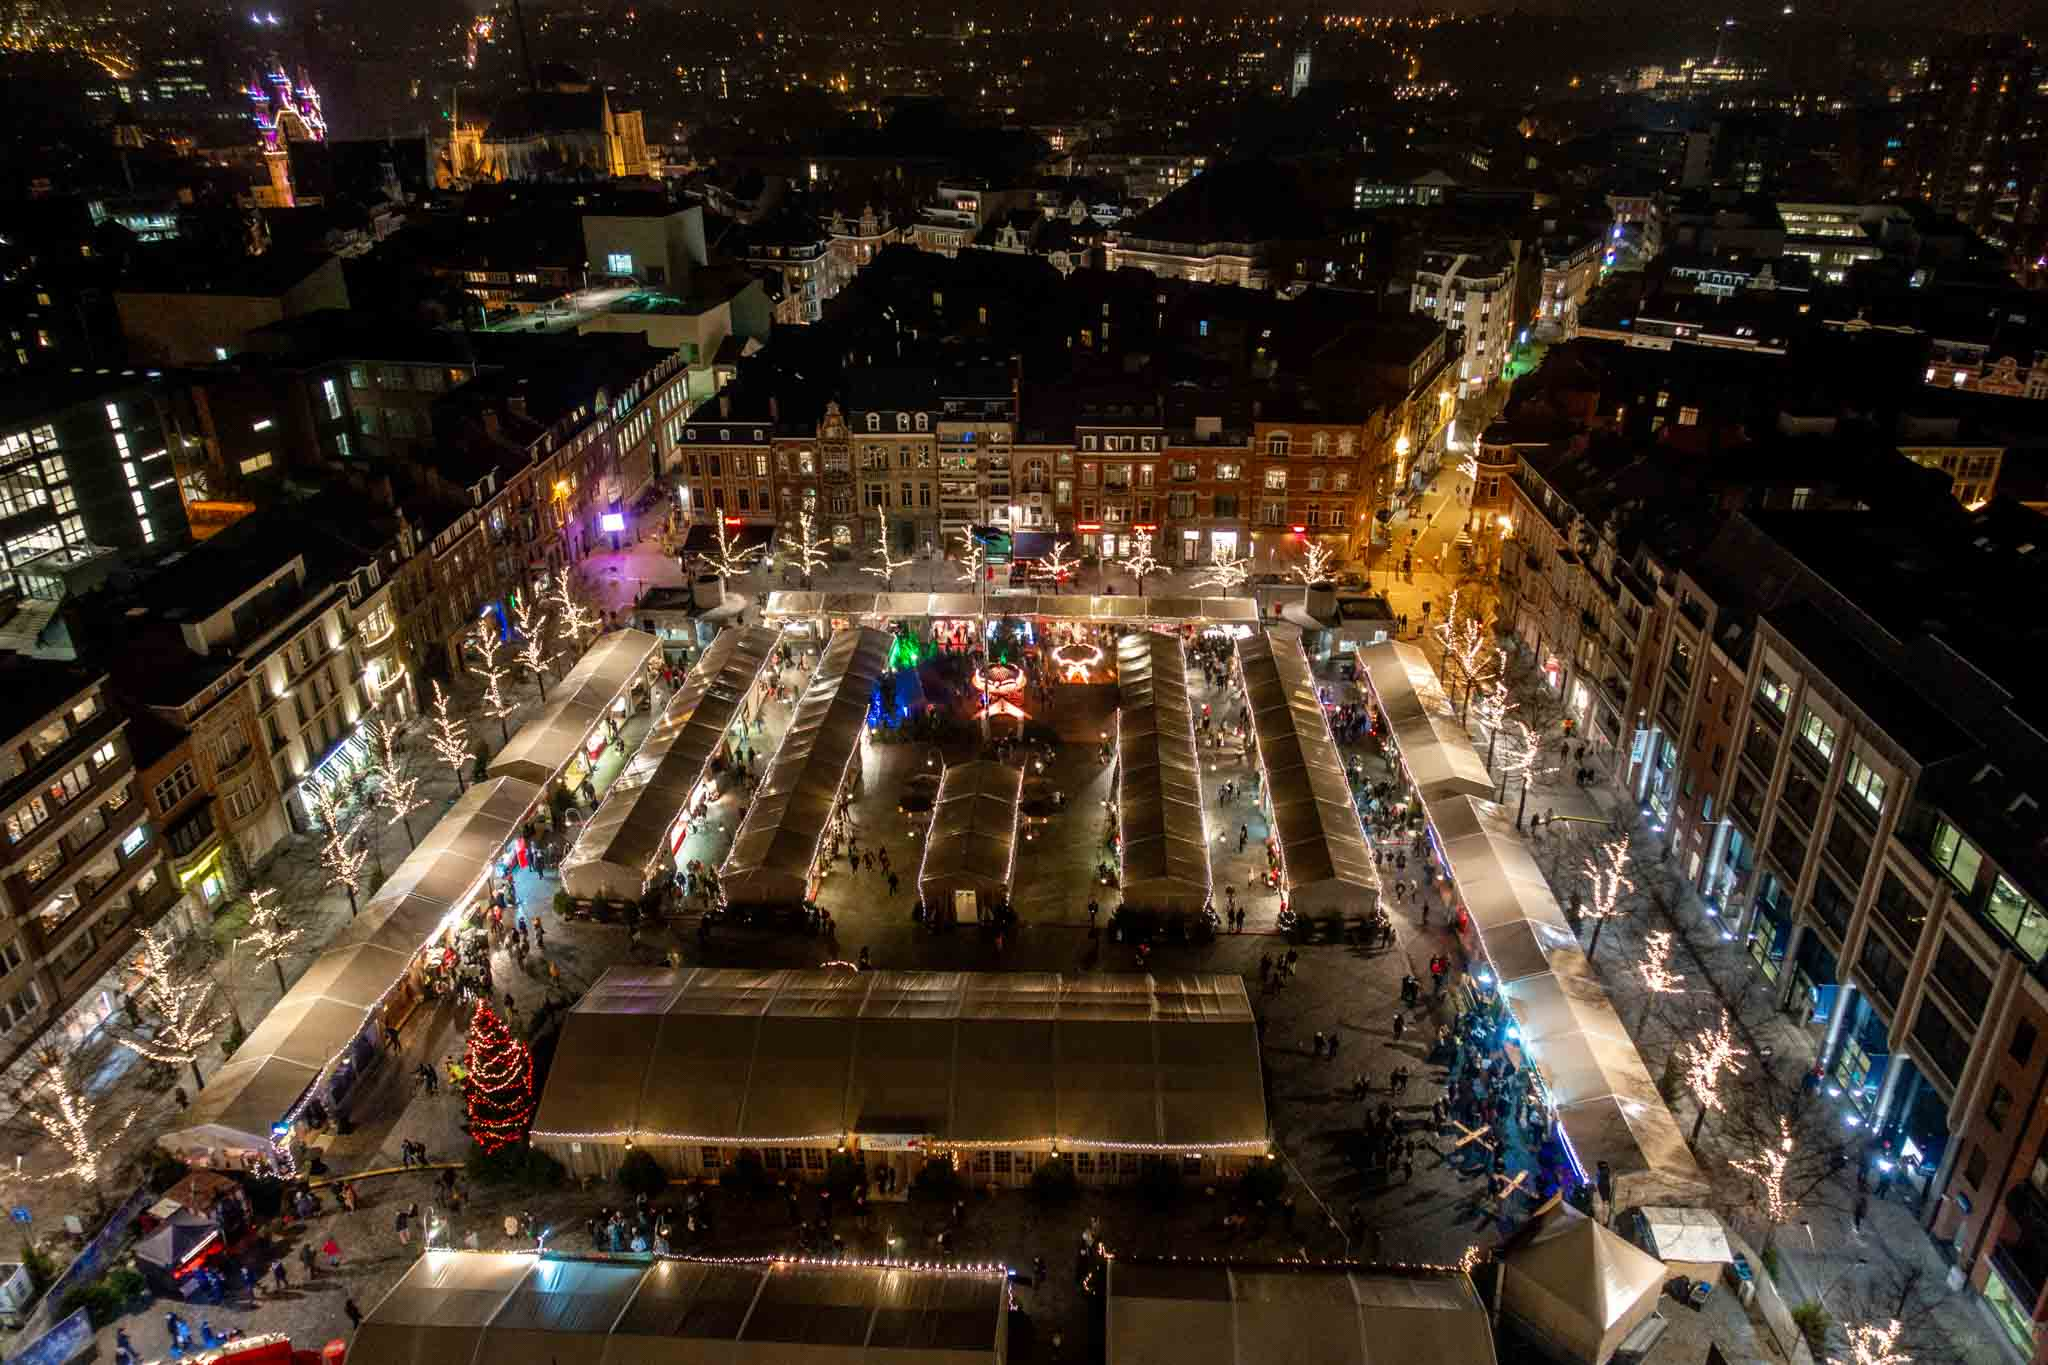 Overhead view of the stalls of the Leuven Christmas market